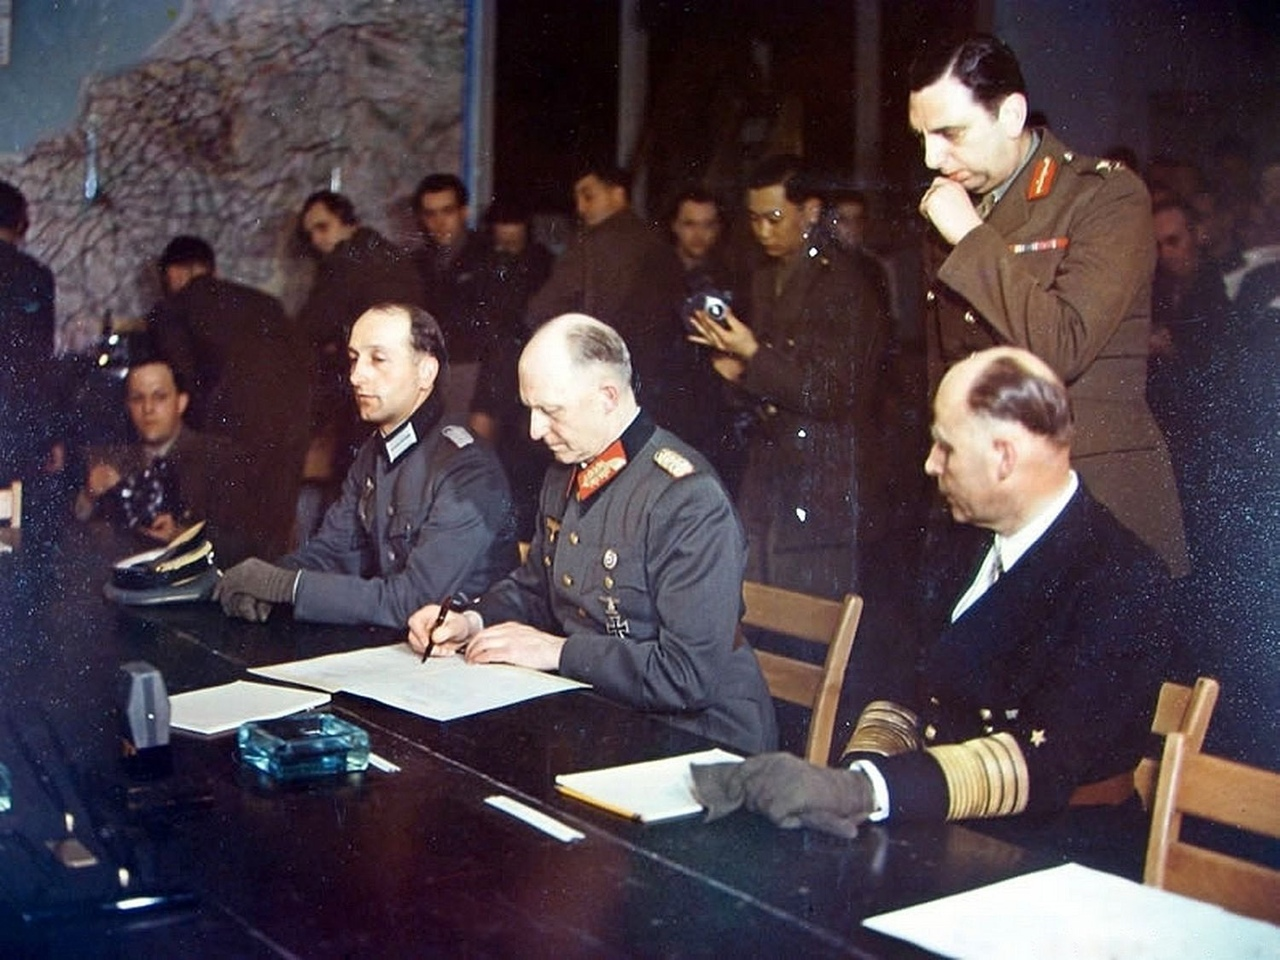 The face of German officers at the time of signing the surrender.